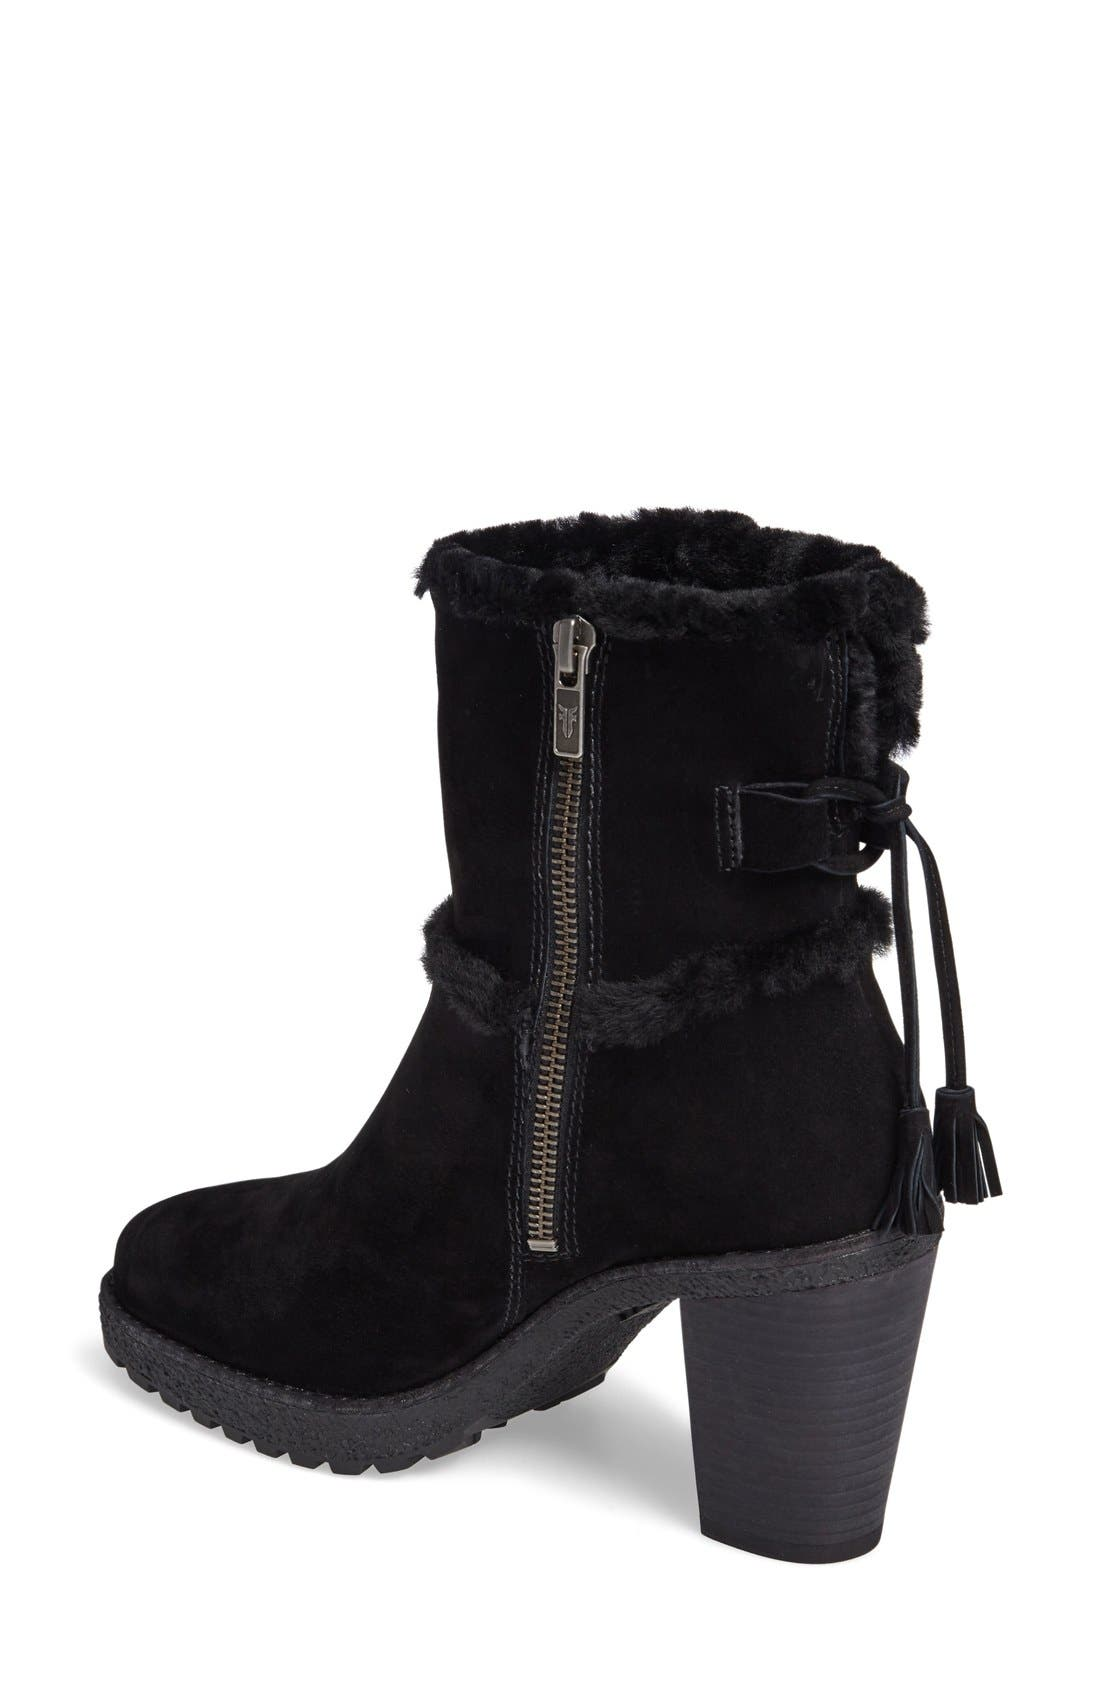 Jen Genuine Shearling Lined Water Resistant Boot,                             Alternate thumbnail 6, color,                             001